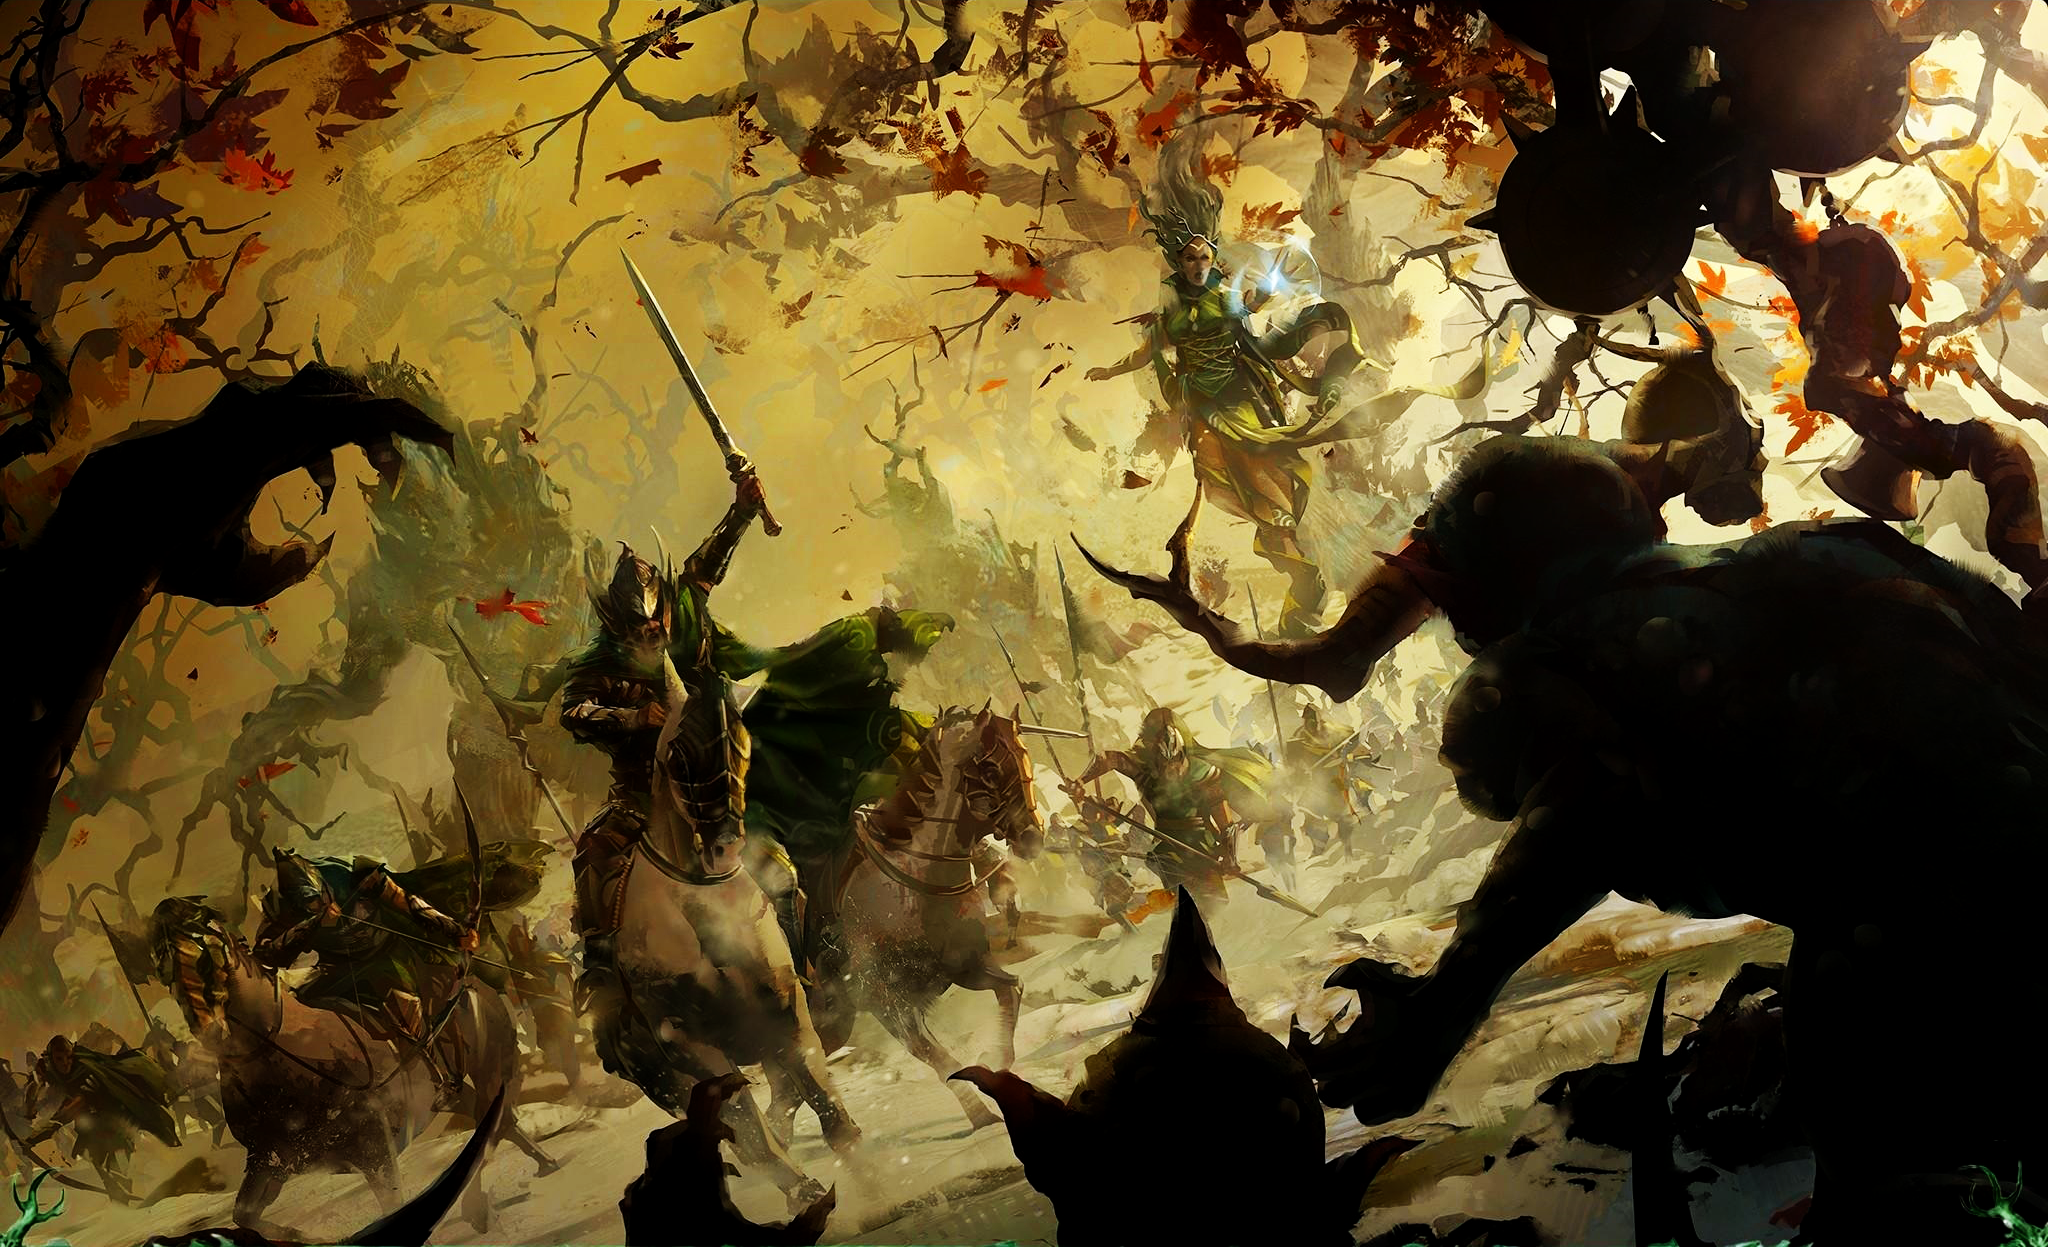 Just Wanted To Share This Awesome Wood Elves Wallpaper I Found Warhammer Art Warhammer Wood Elves Elf Art